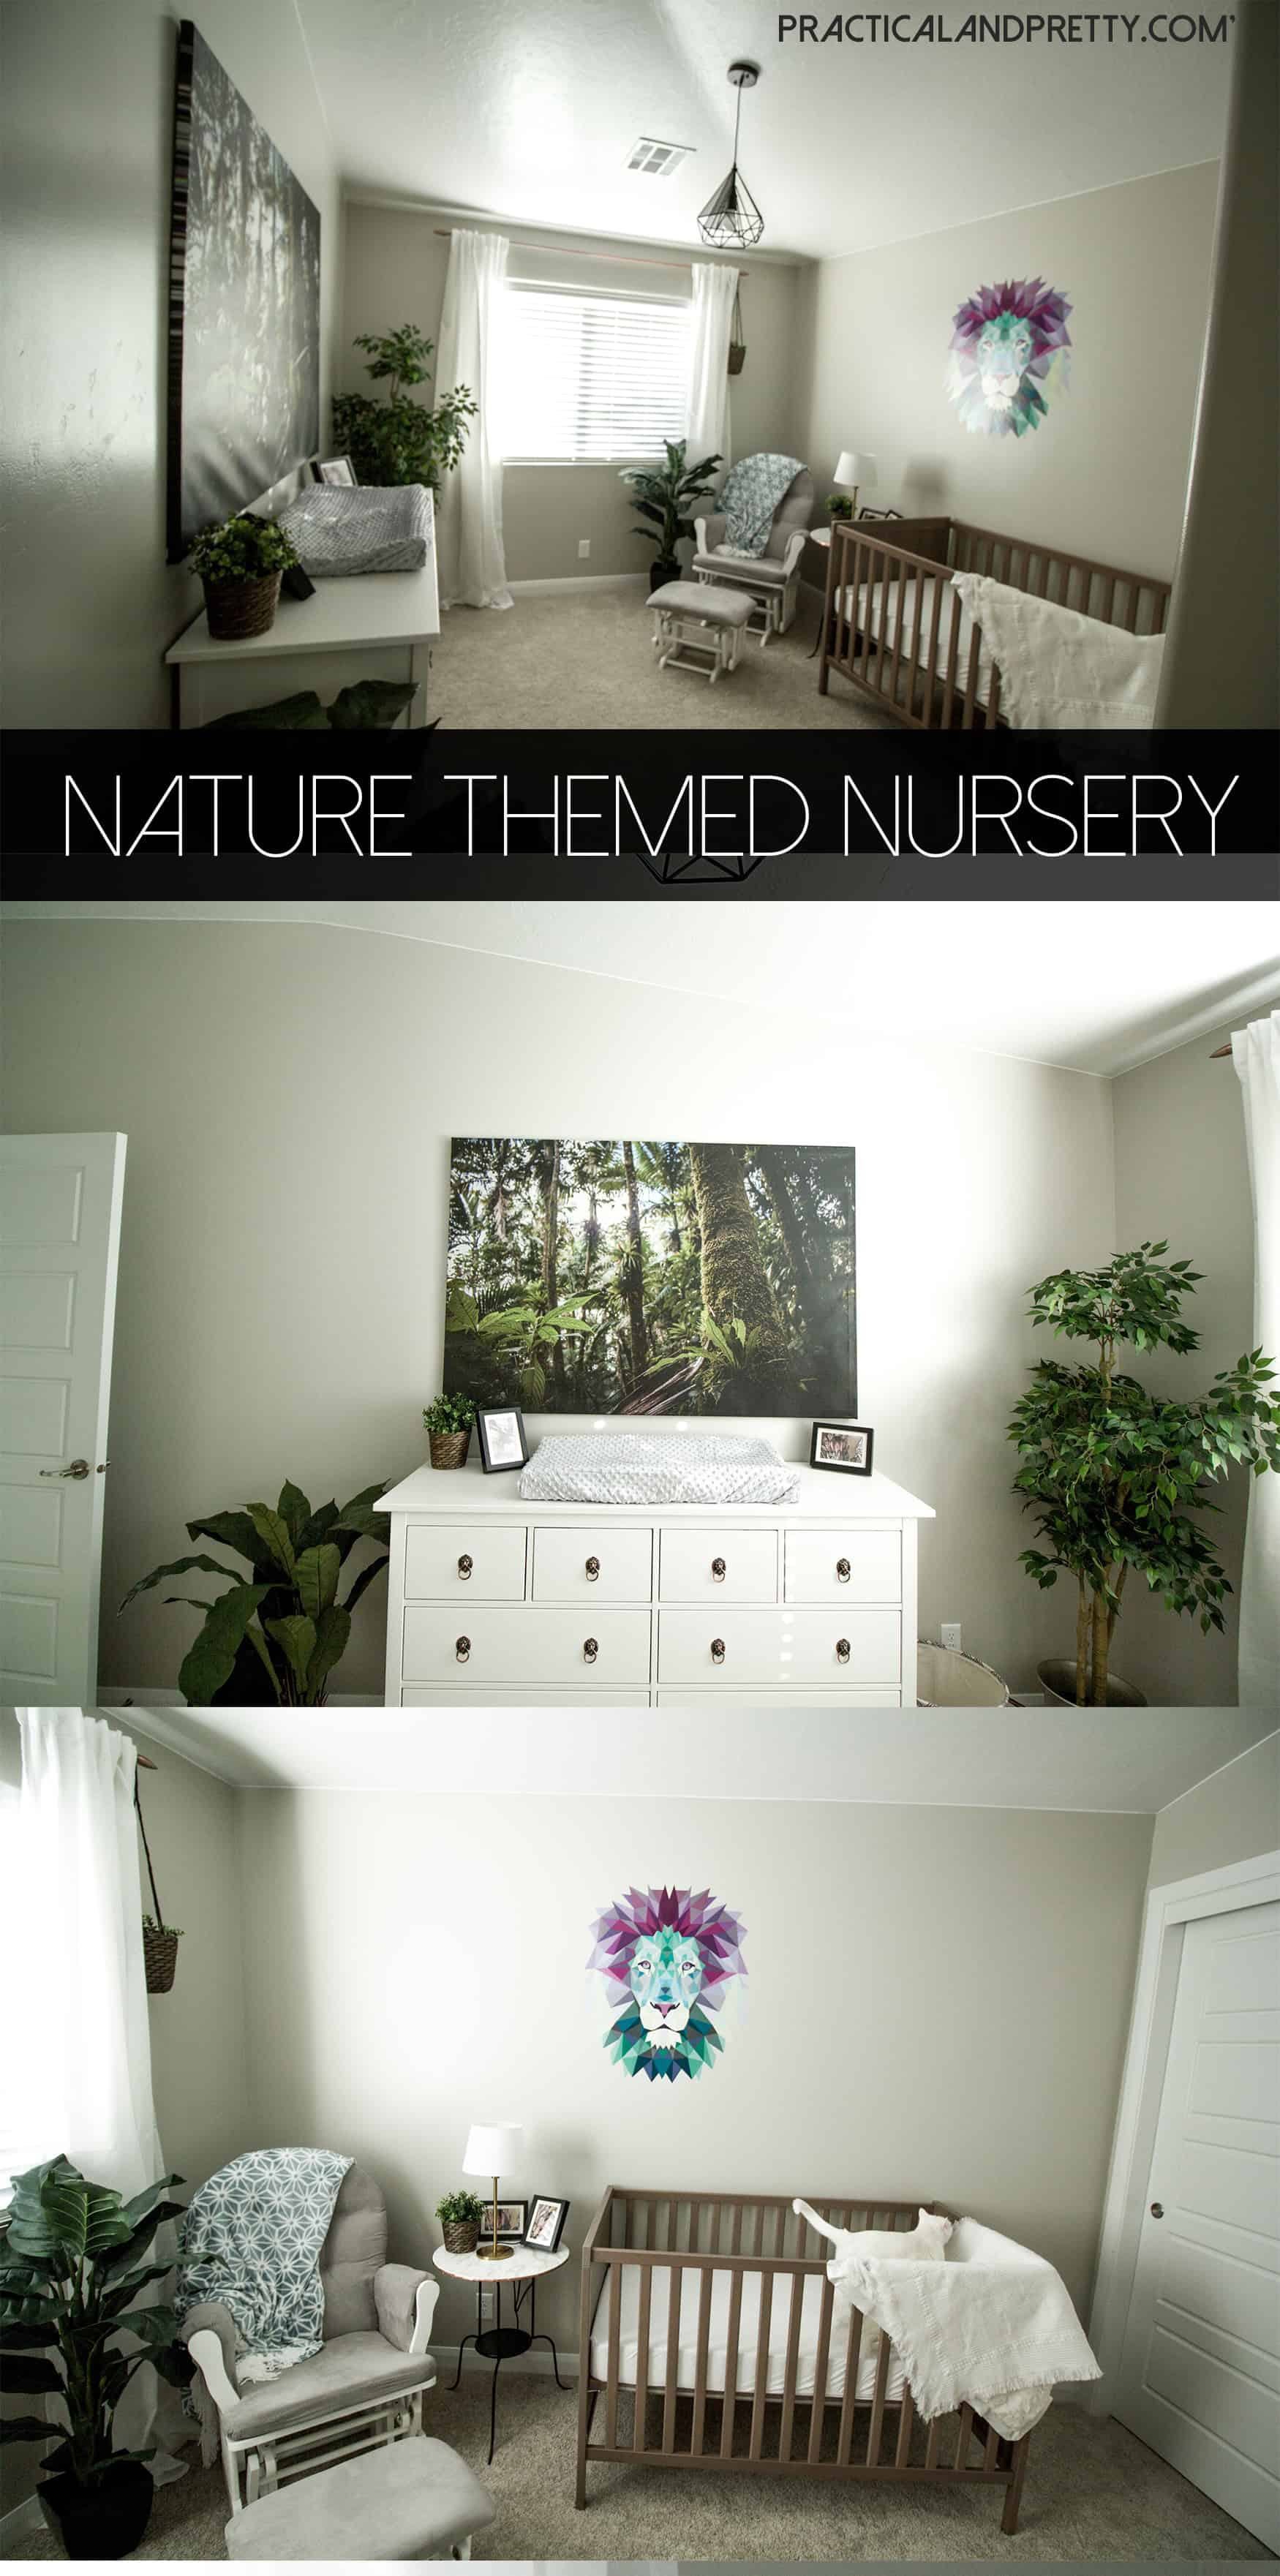 This serene nursery is exactly what you need if you're waking up every two hours. Plus it's pretty gender neutral!